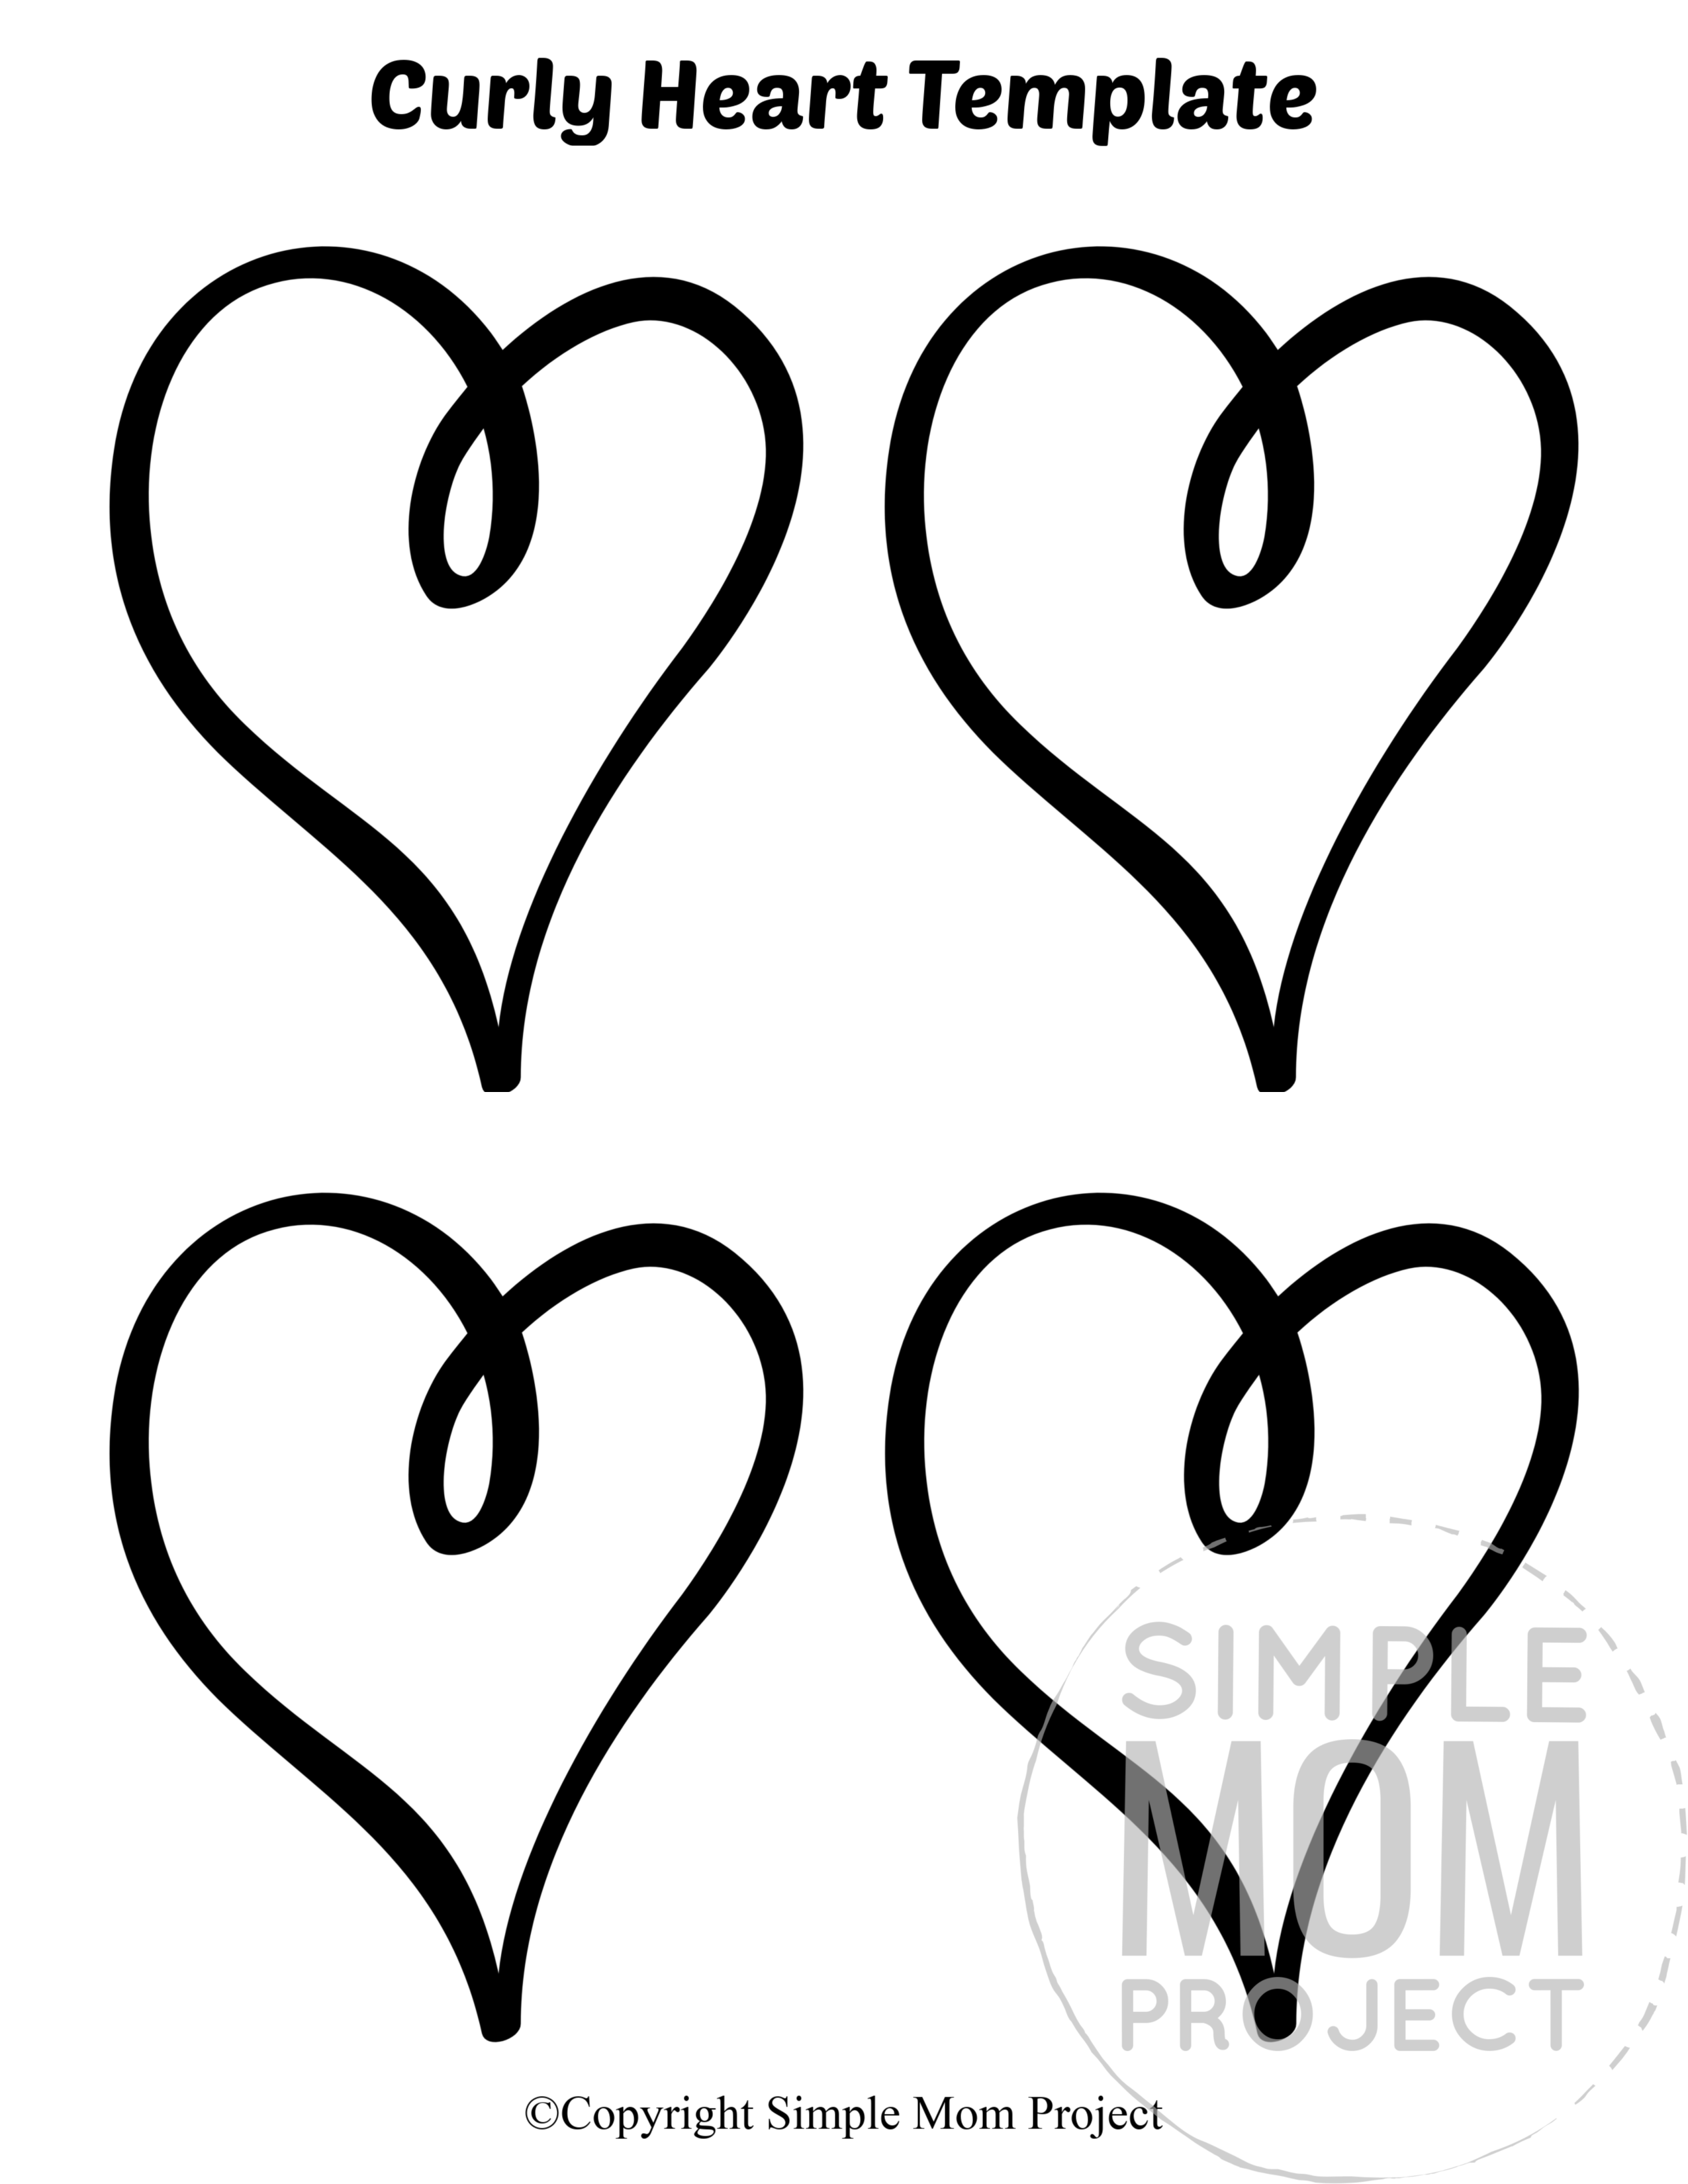 Curly Small Heart Shaped Template Full Page Cutout outline stencil